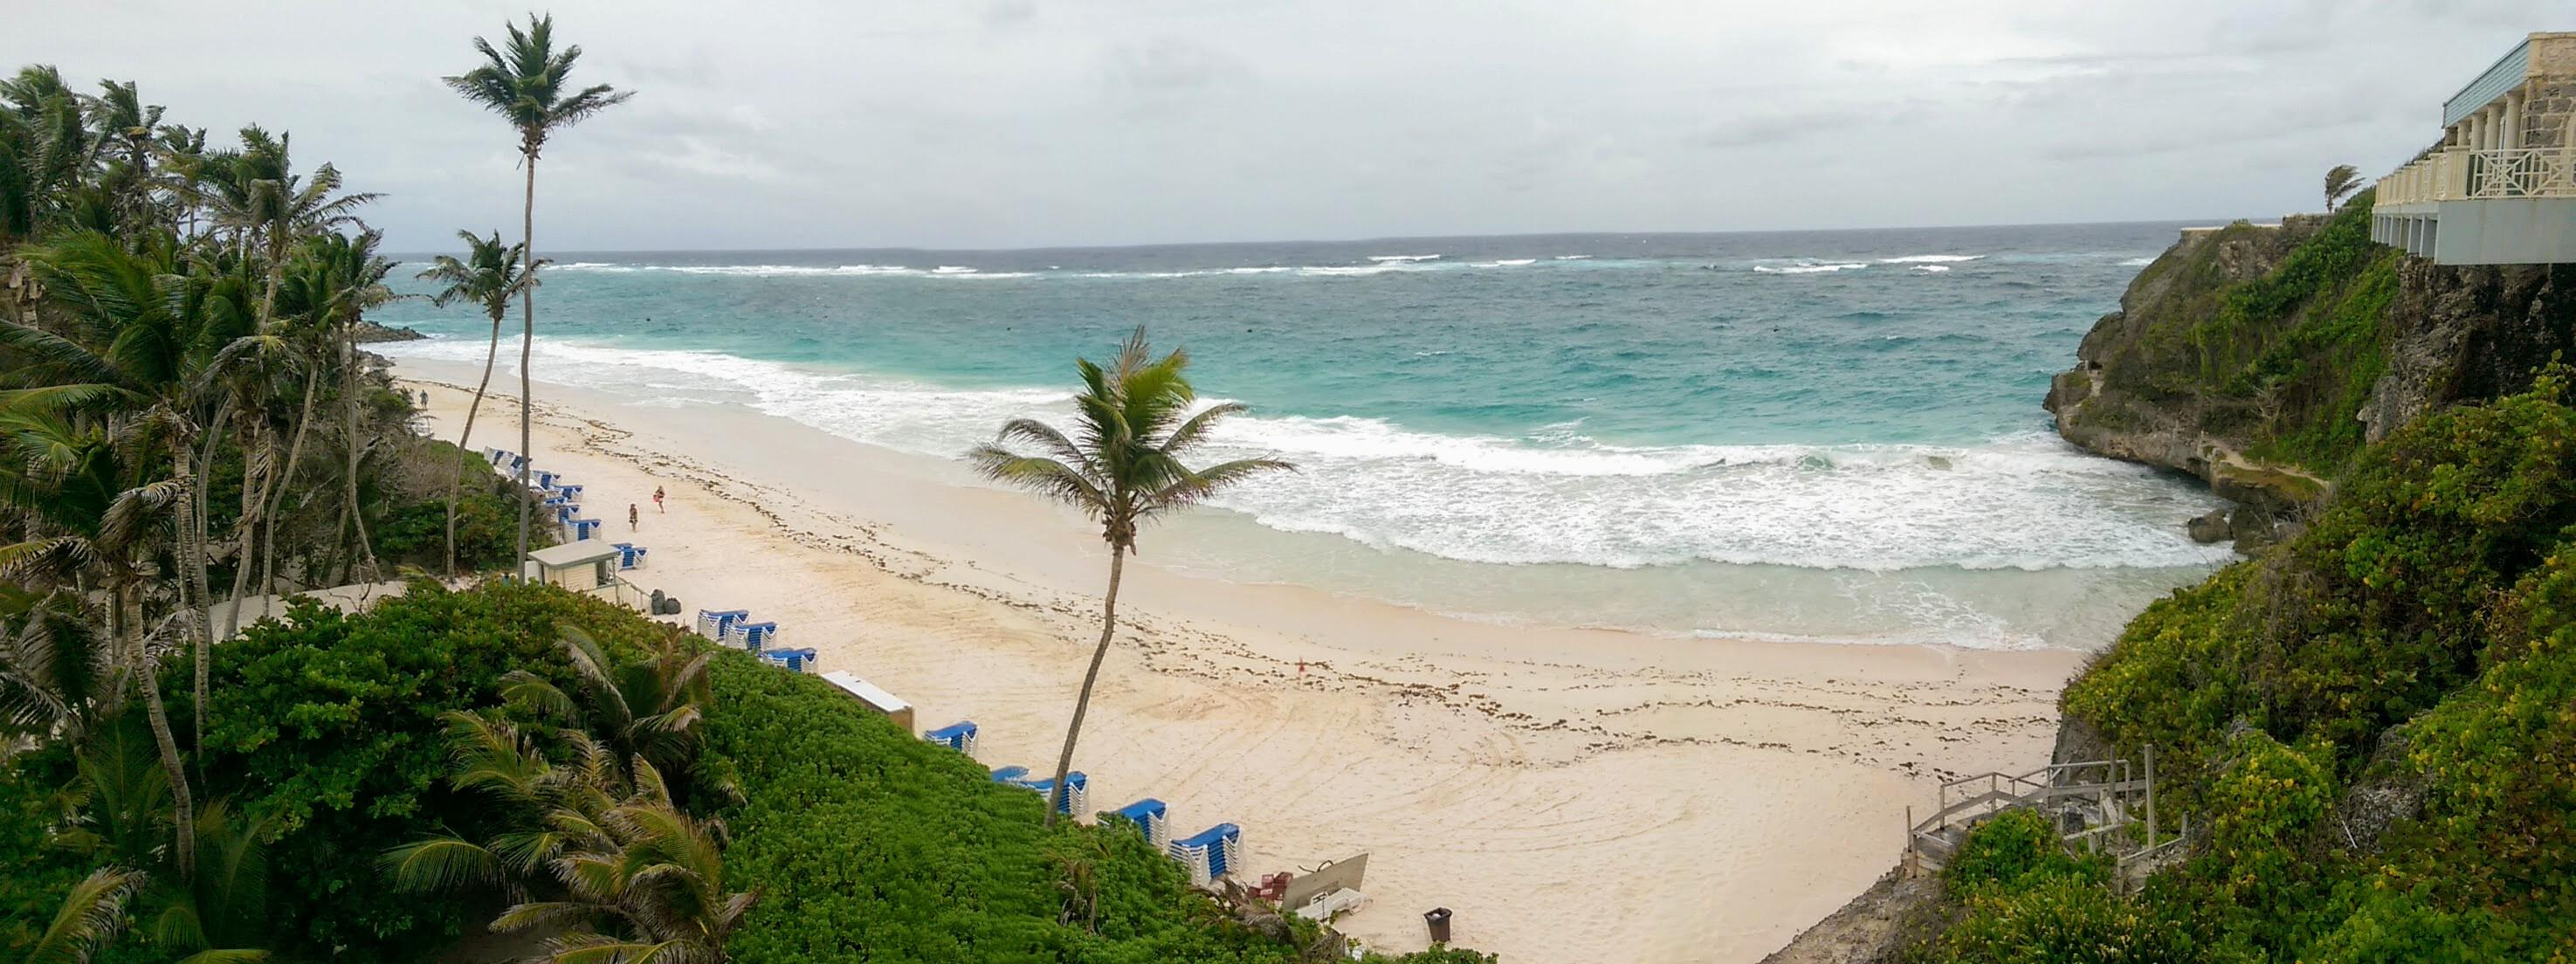 crane beach panorama barbados